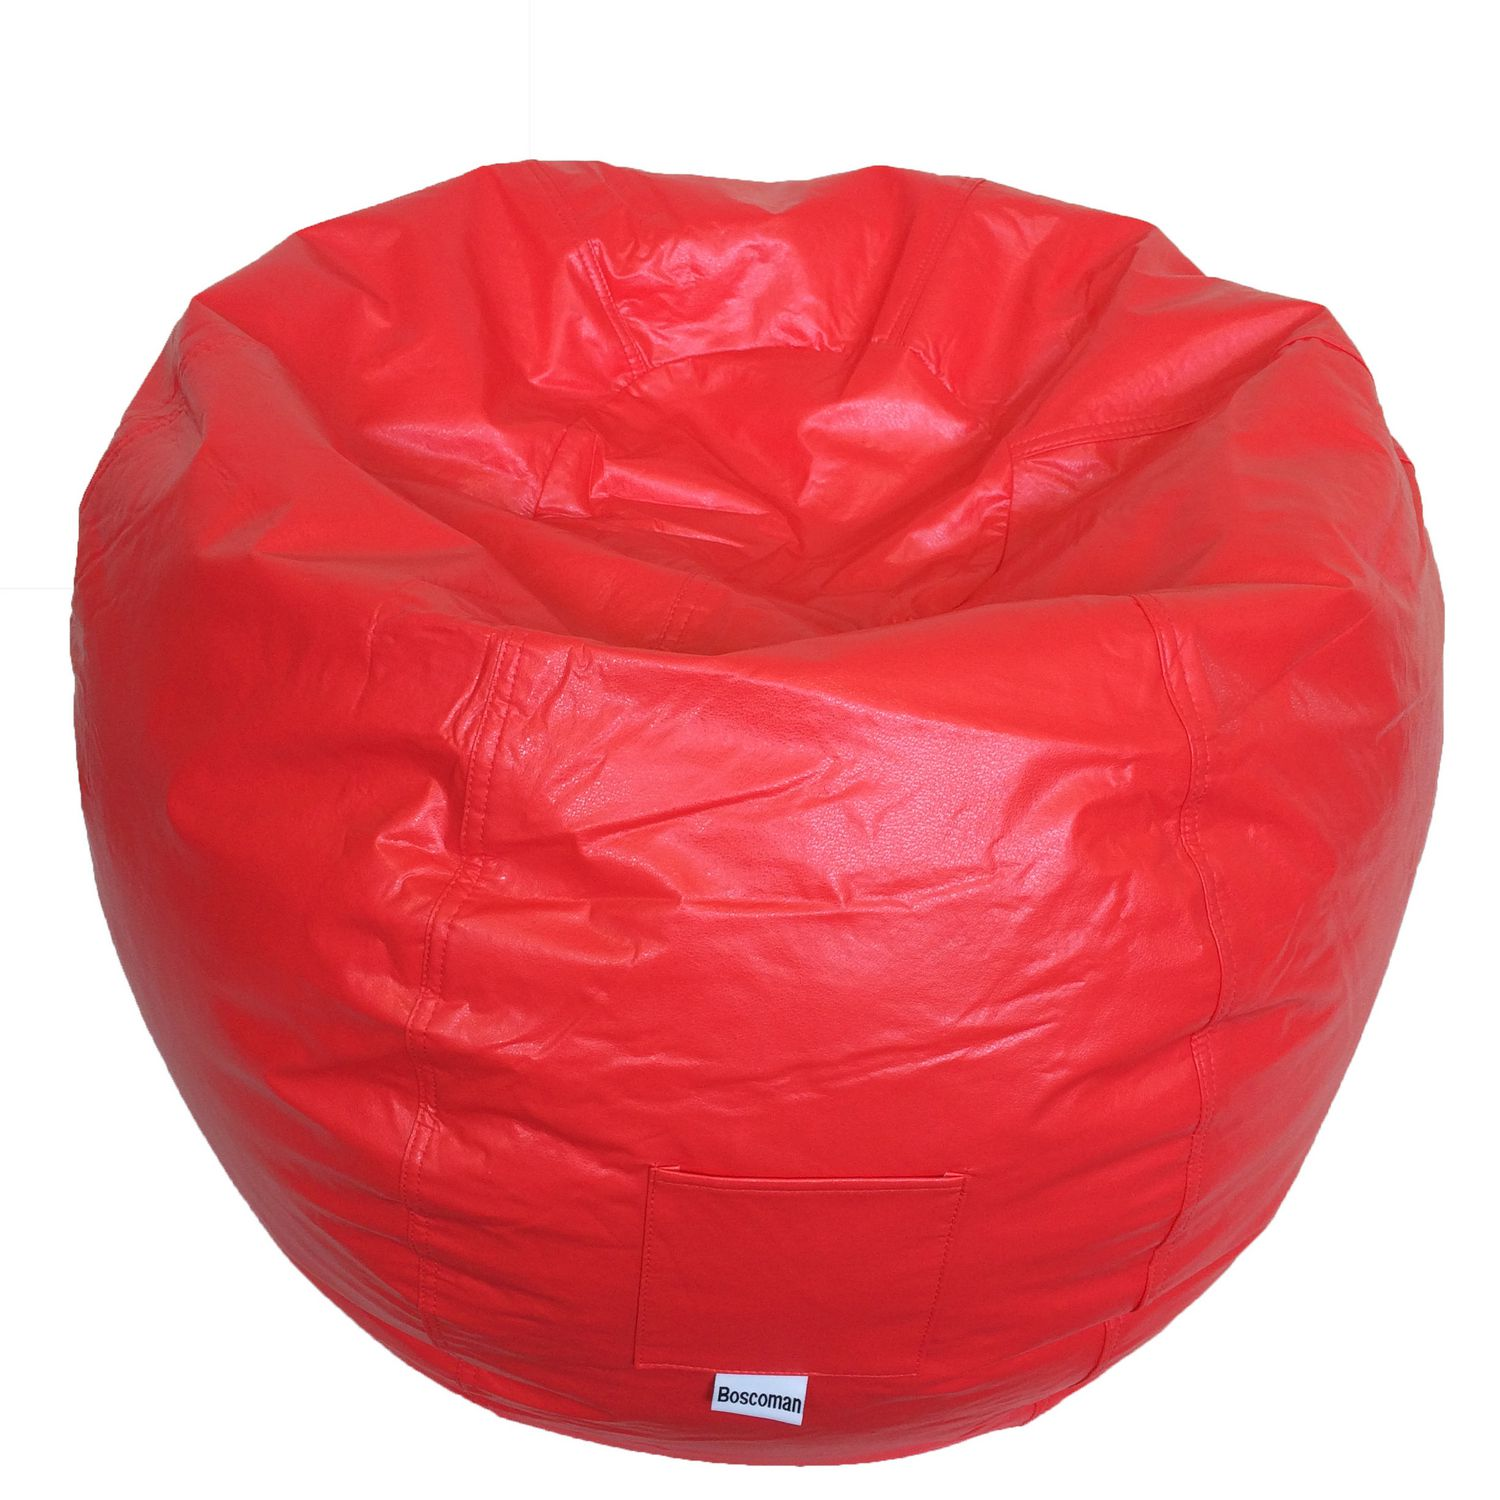 awesome bean bag chairs office for back support adults rtty1